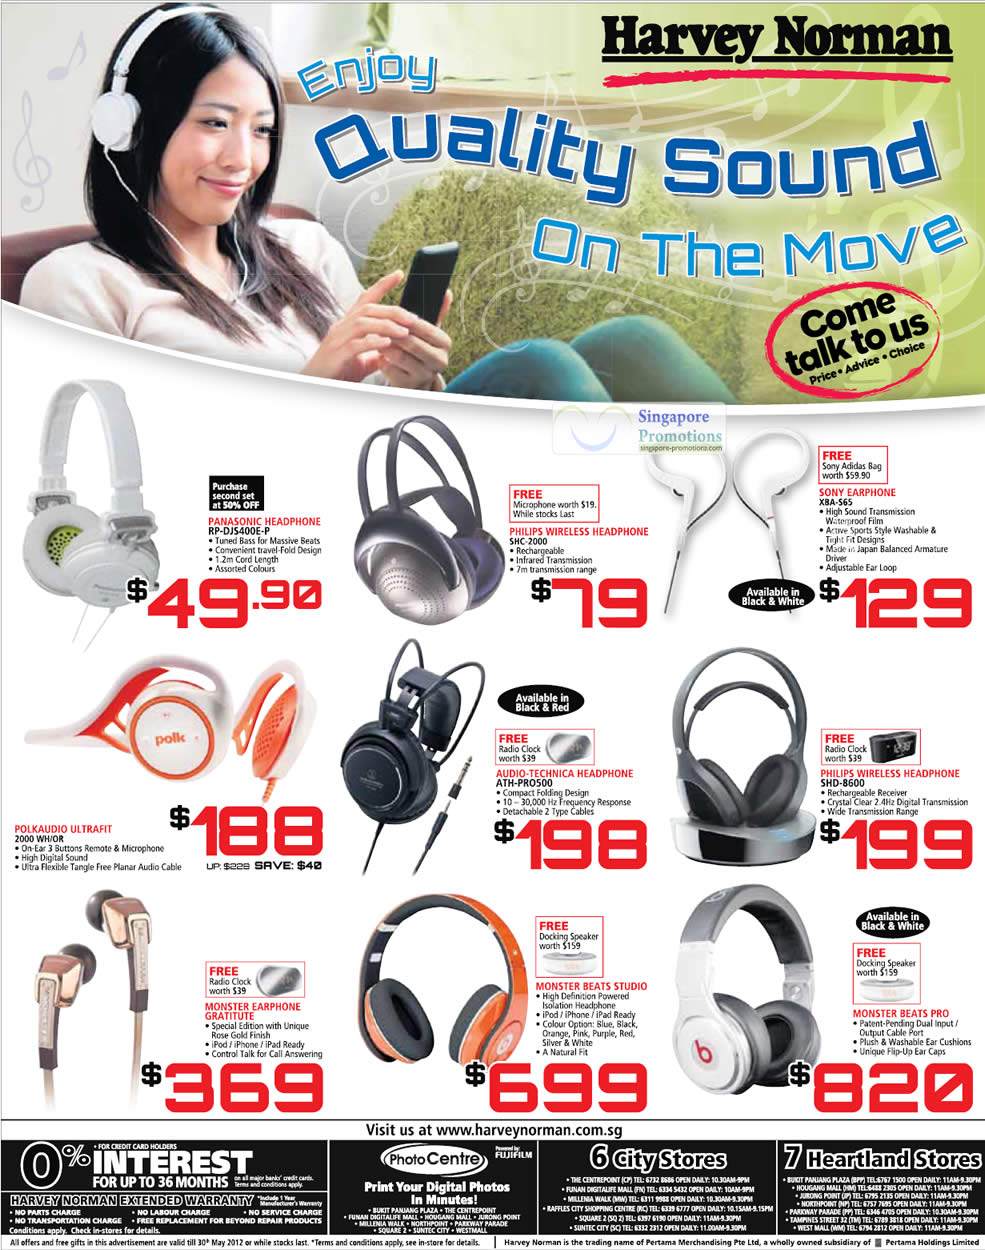 PANASONIC Headphone RP-DJS400E-P, PHILIPS Wireless Headphone SHC-2000, SONY Earphone XBA-S65, PHILIPS Wireless Headphone SHD-8600, AUDIO-TECHNICA Headphone ATH-PR0500, POLKAUDIO Ultrafit 2000 WH/OR, MONSTER Earphone Gratitute, MONSTER BEATS Studio, MONSTER BEATS Pro